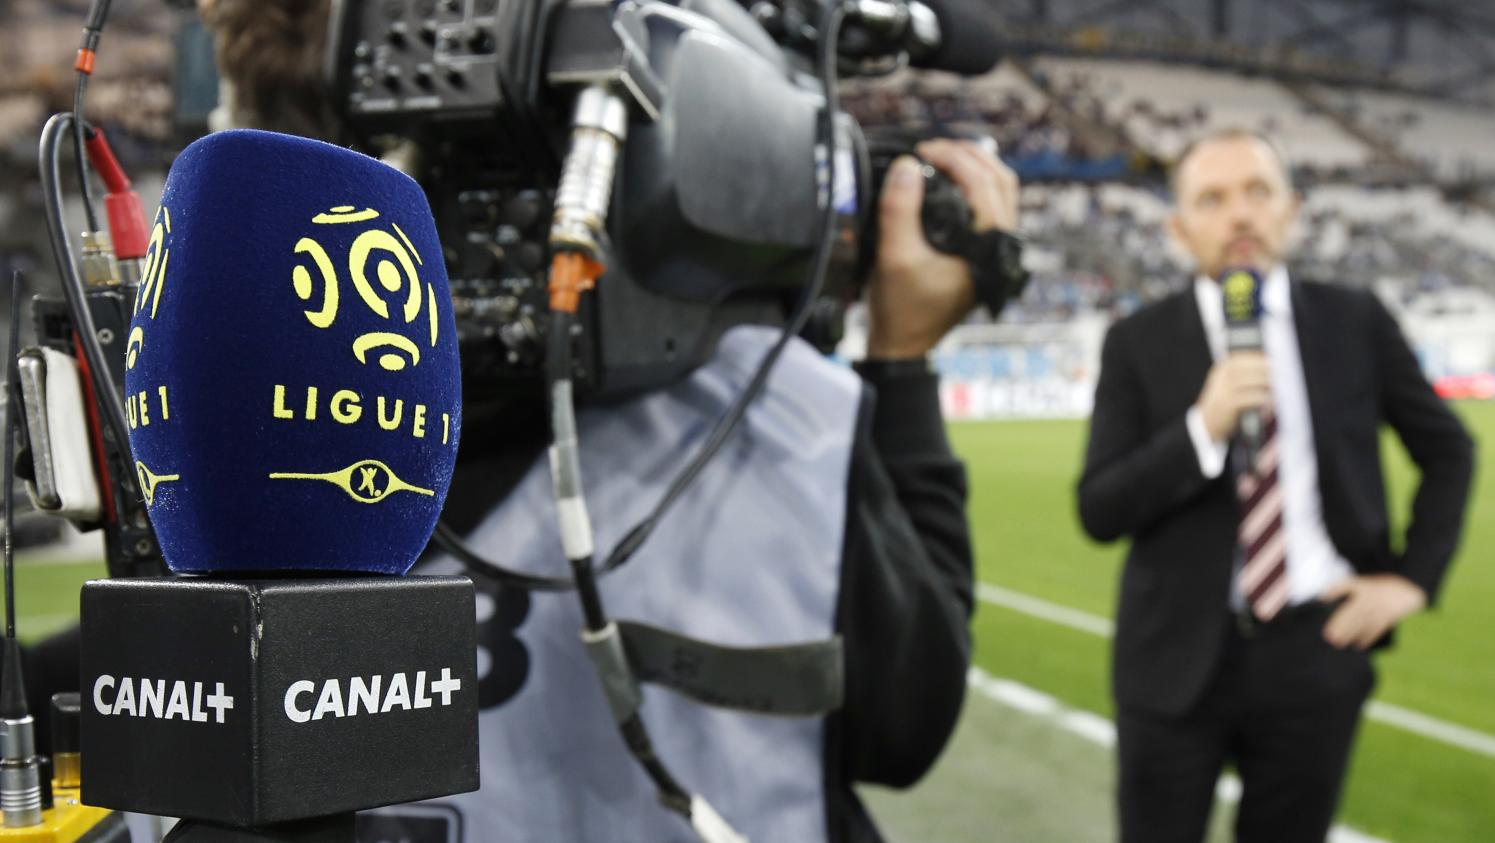 Foot apr s avoir perdu les droits t l de la ligue 1 - Retransmission foot coupe de la ligue ...